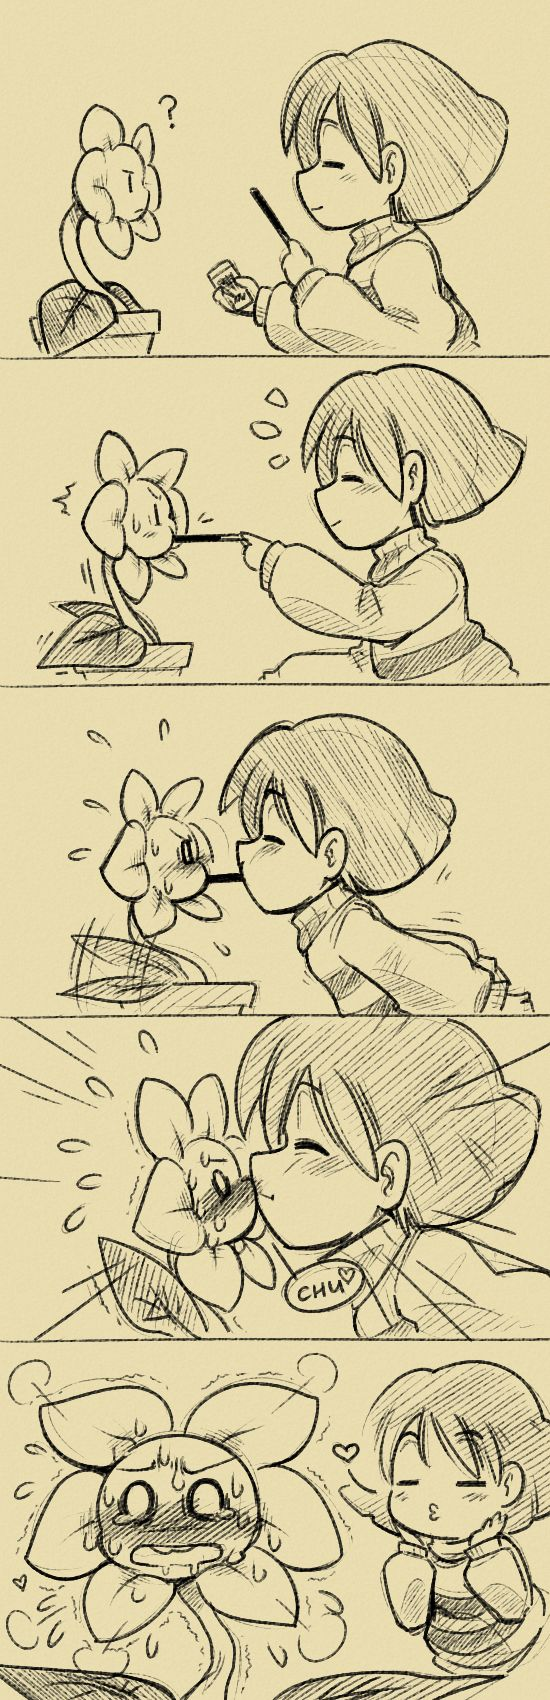 I'm trying SO hard to not ship. I only like Chara x Flowey, Sans x Frisk, and Papyrus x Undyne